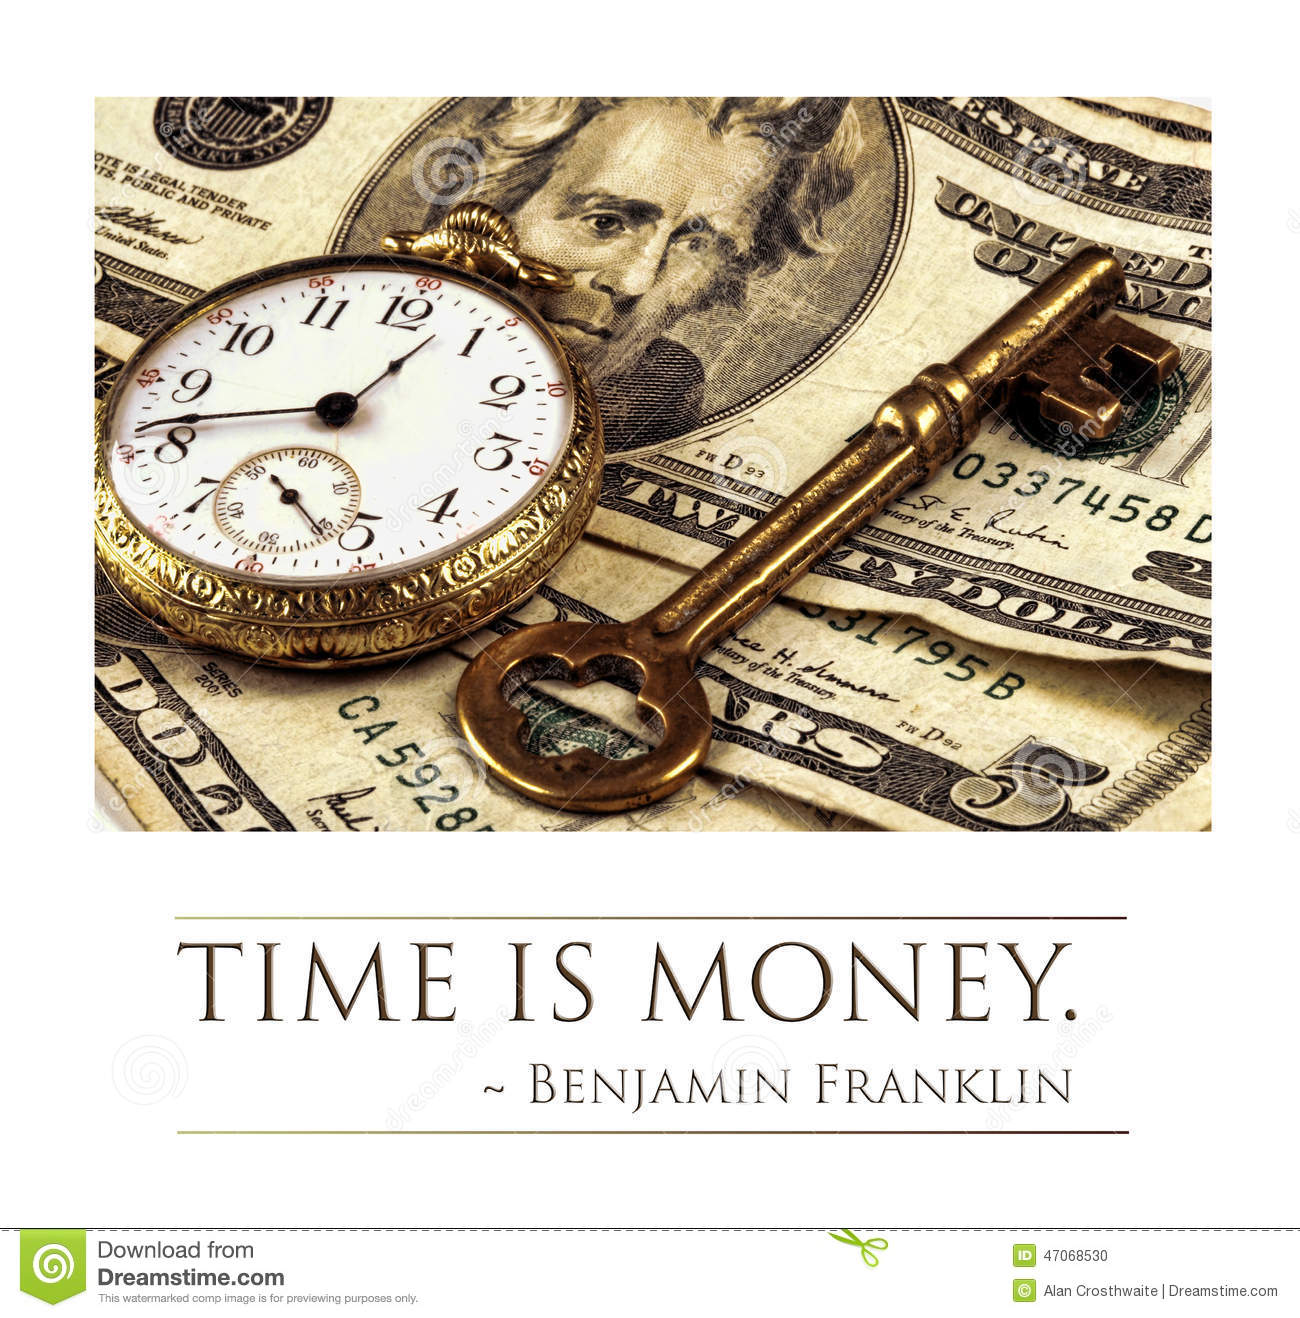 011 Essay About Time Is Money Old Pocket Watch Cash Skeleton Key Concept Image Quote Bottom Benjamin Franklin Frightening On In Urdu Hindi Full